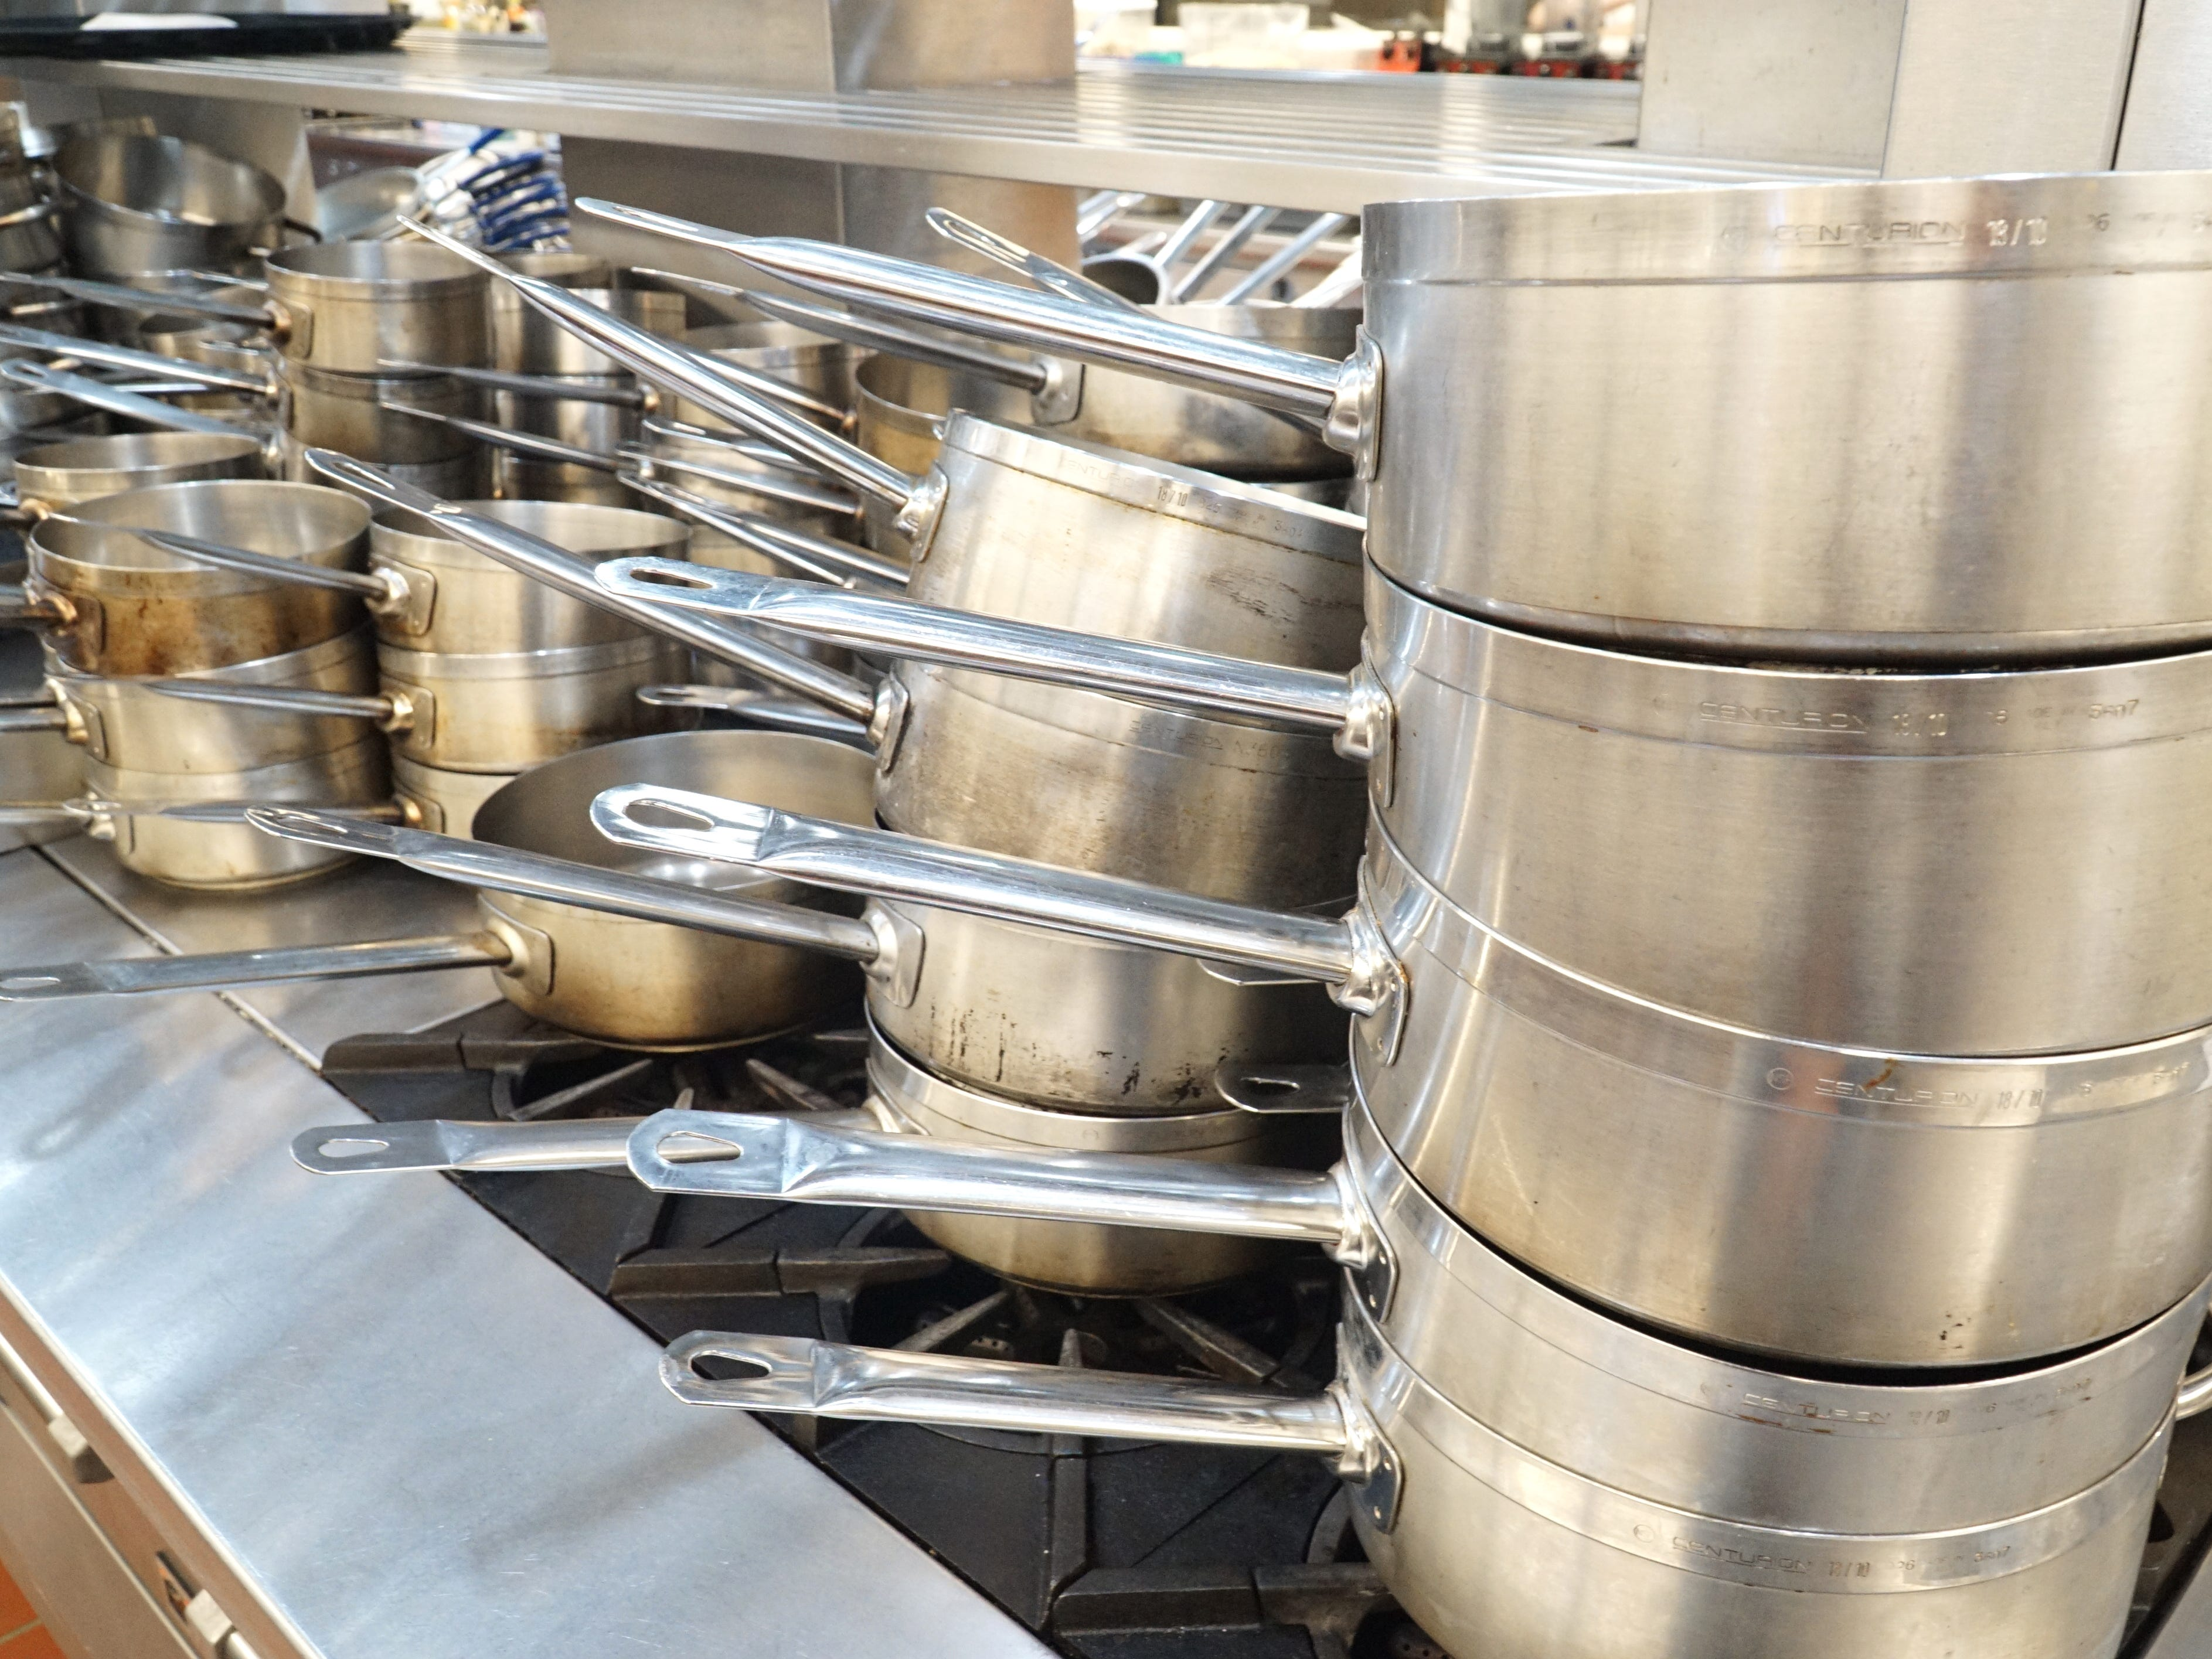 A stack of clean pots and pans await ingredients in the Vista Tech center's kitchen.